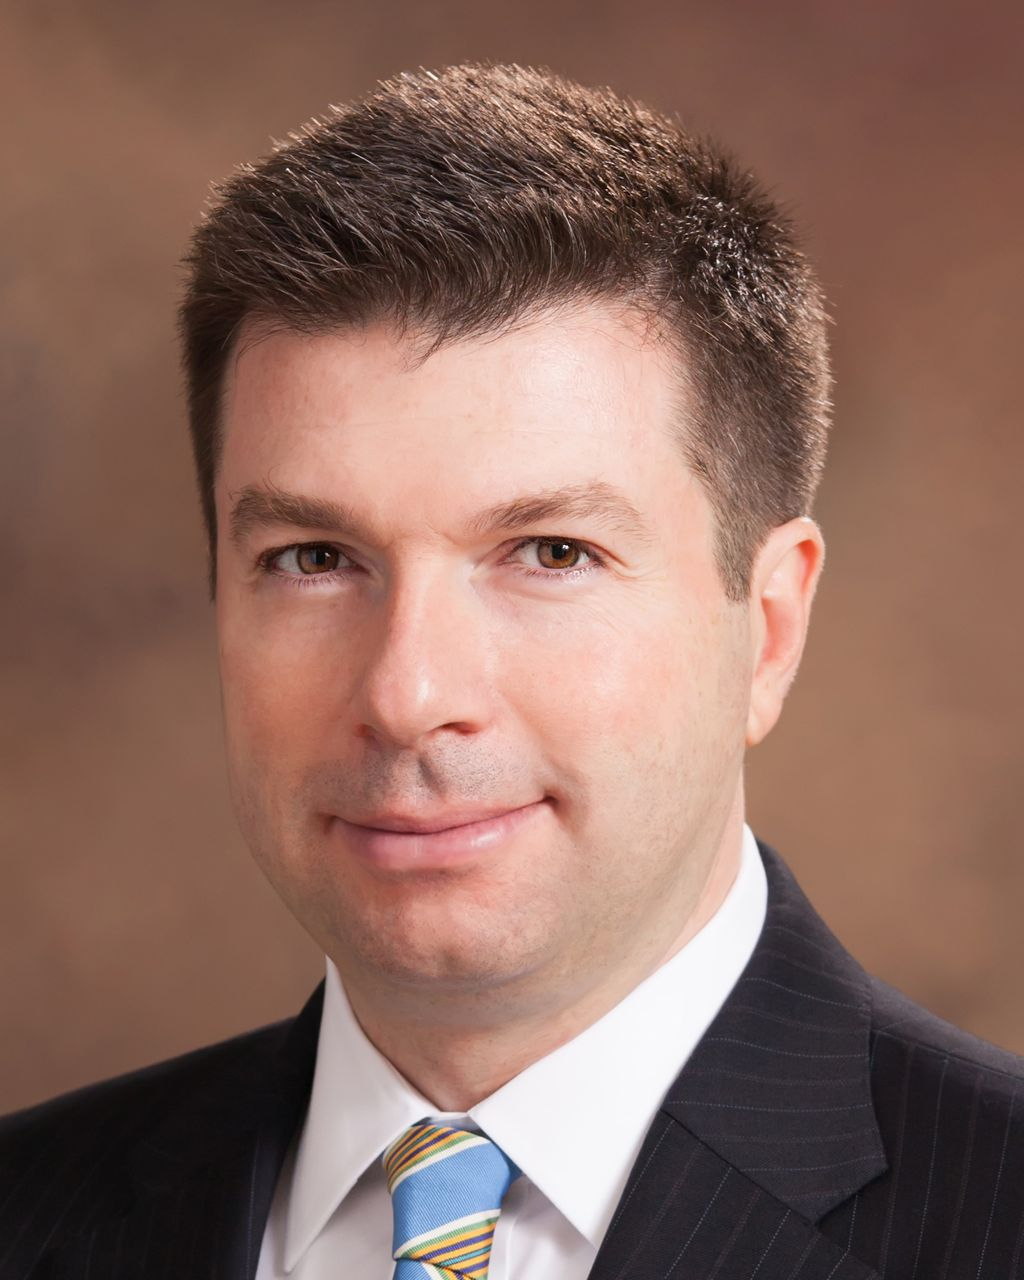 Patrick Cote, financial advisor Braintree MA